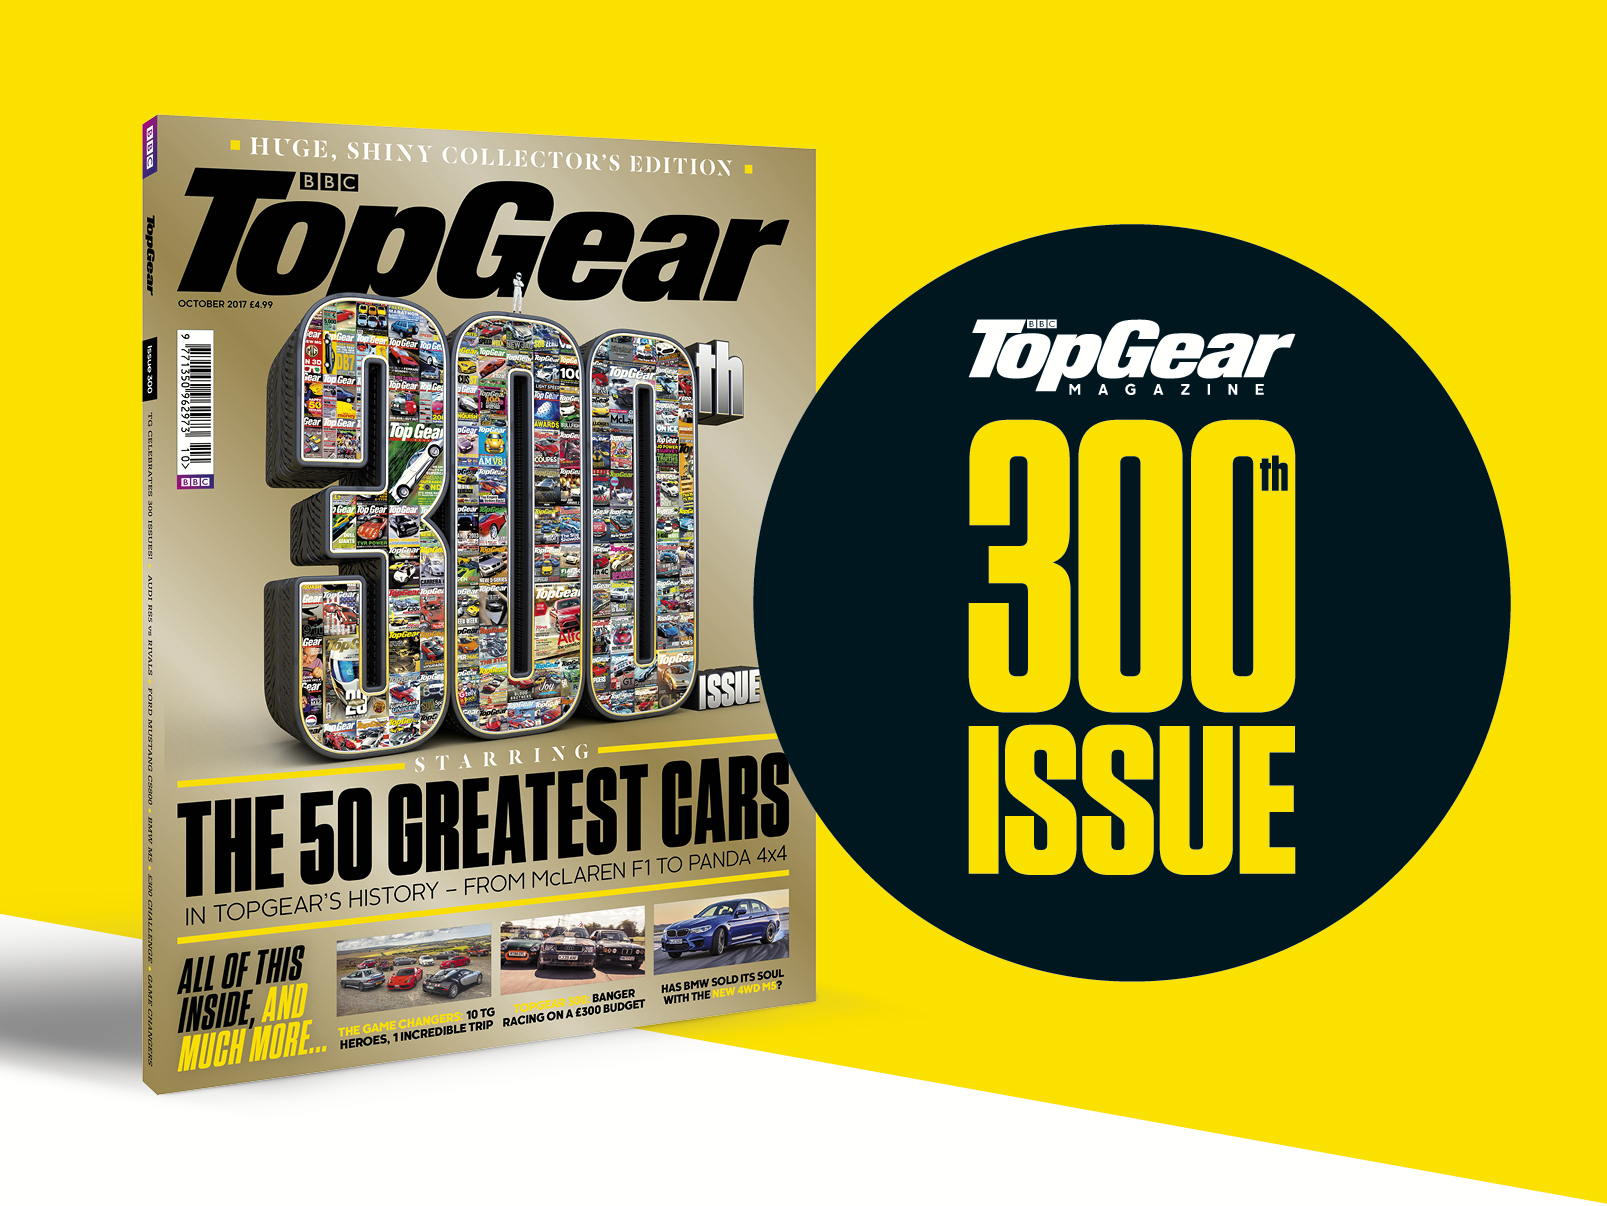 Top Gear Magazine 300th issue